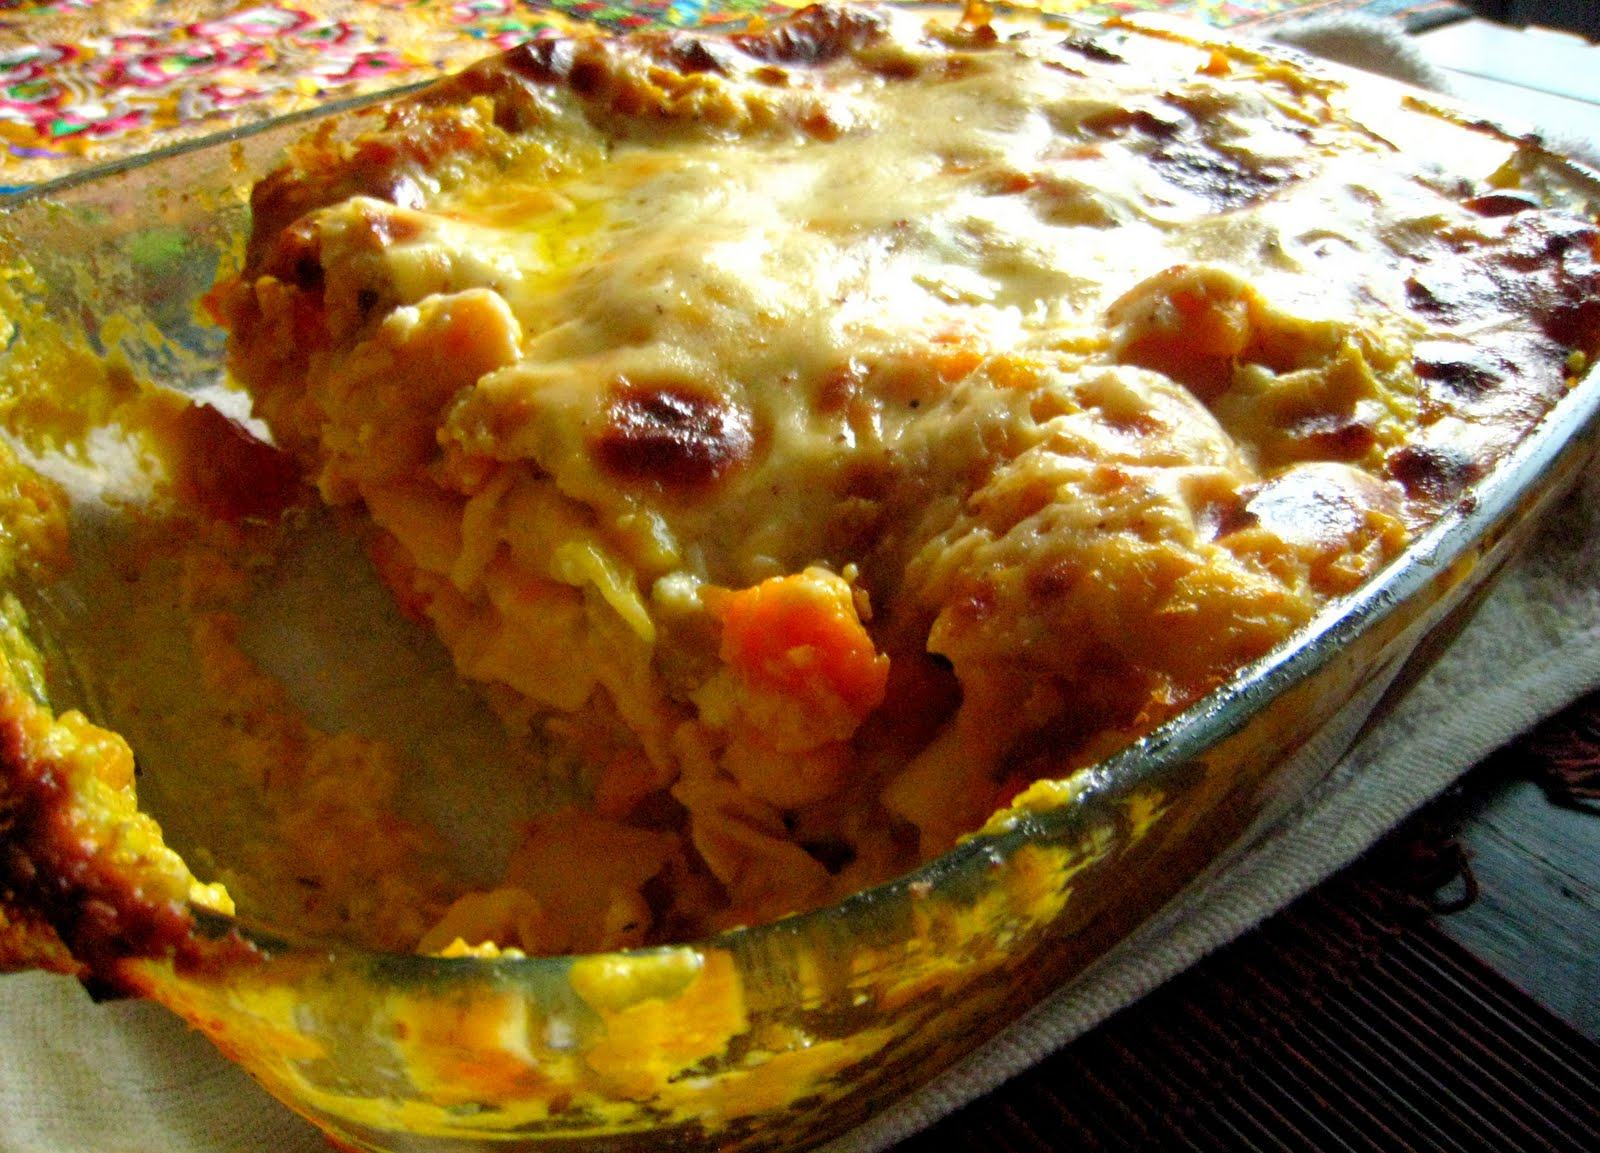 ... by the Skinny Gourmand: Roasted Pumpkin Lasagna with Butter Beans